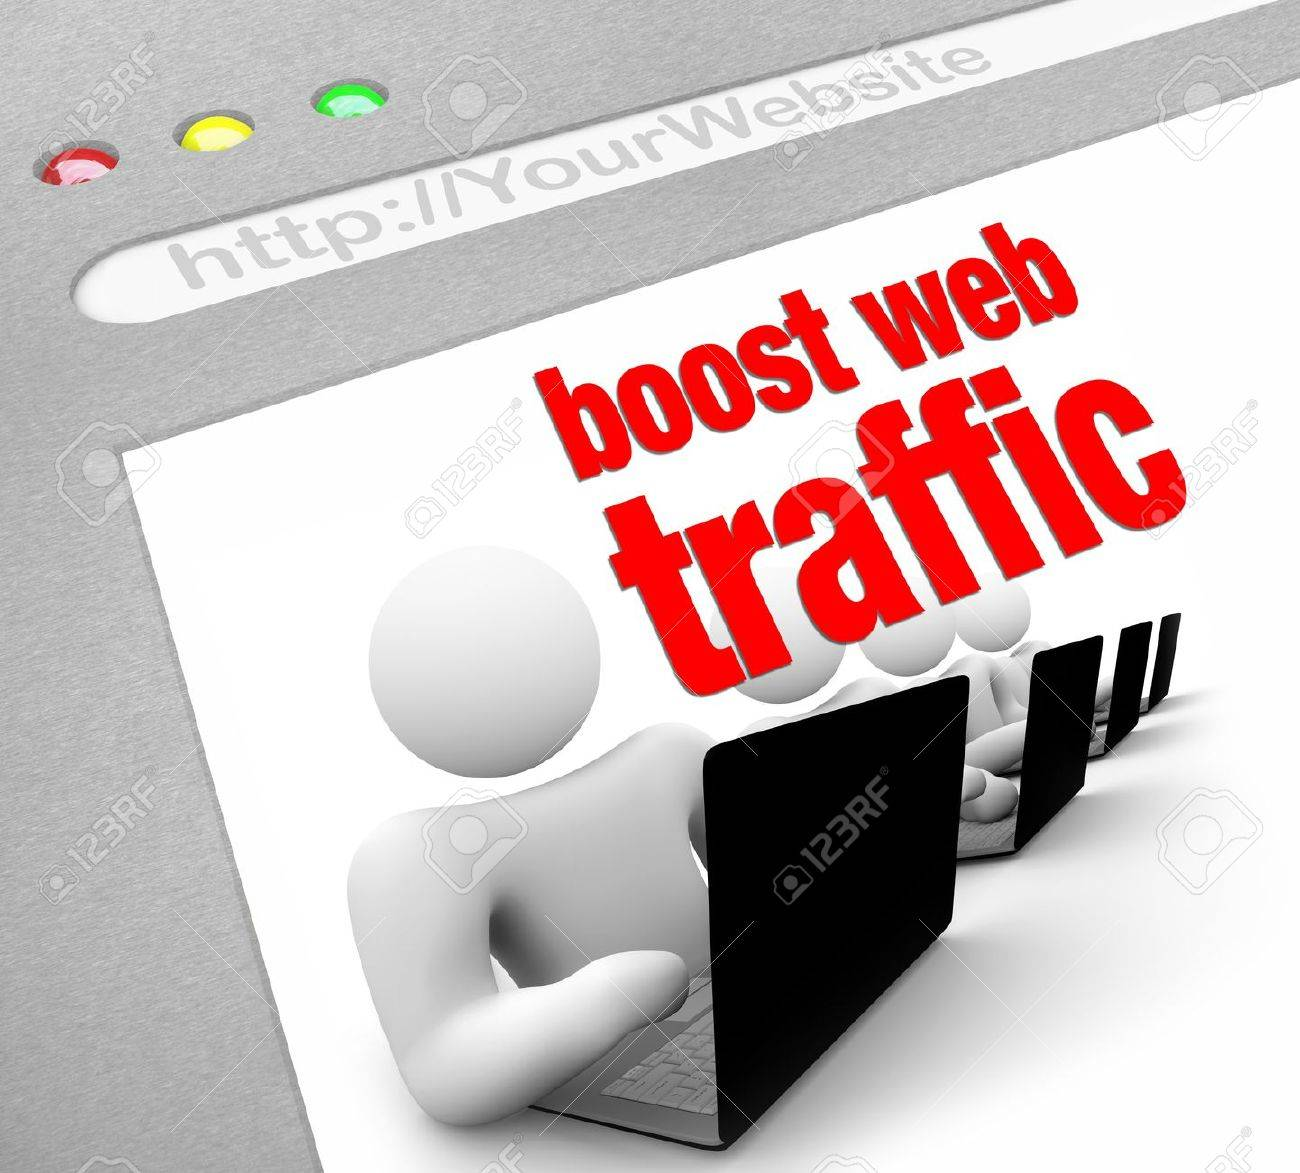 A web browser window shows the words Boost Web Traffic and several people working on laptop computers Stock Photo - 8989829